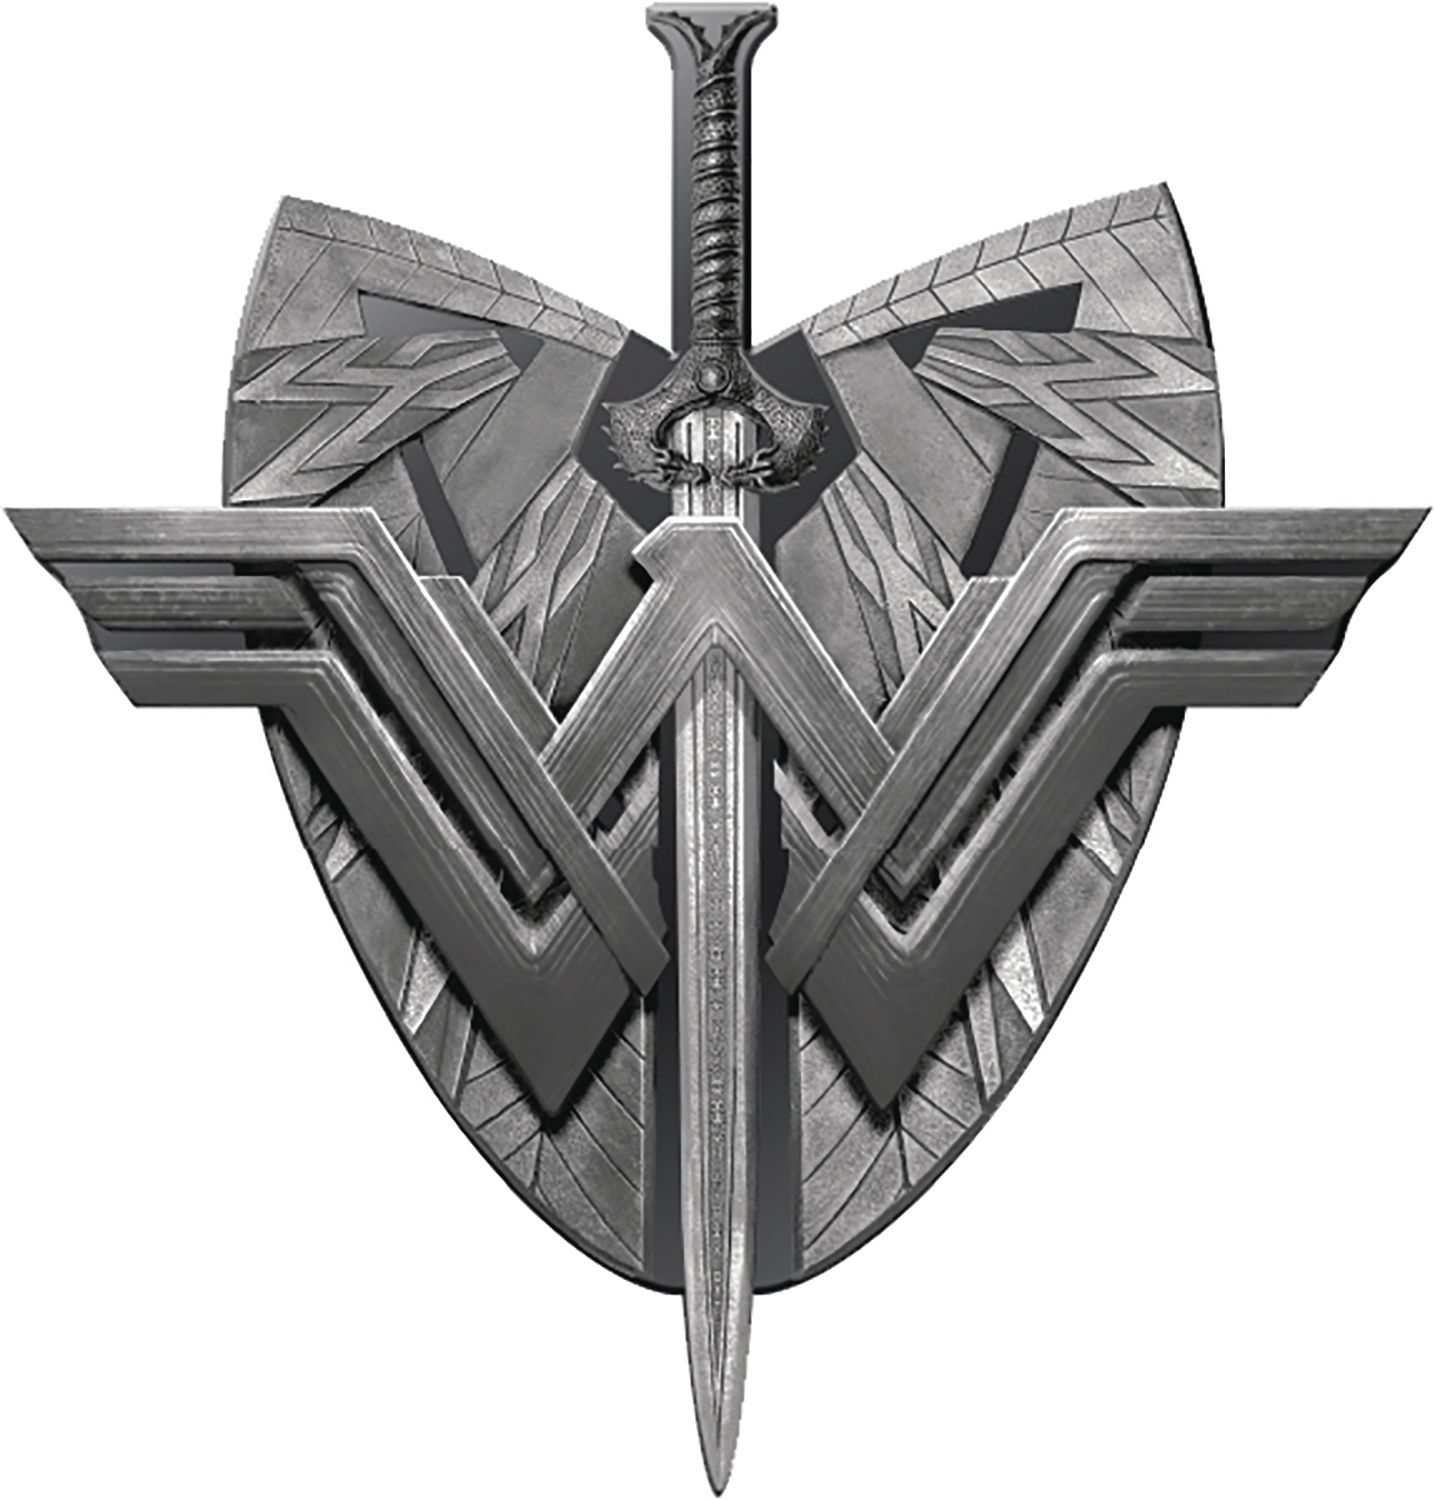 WONDER WOMAN MOVIE SHIELD & SWORD PEWTER LAPEL PIN